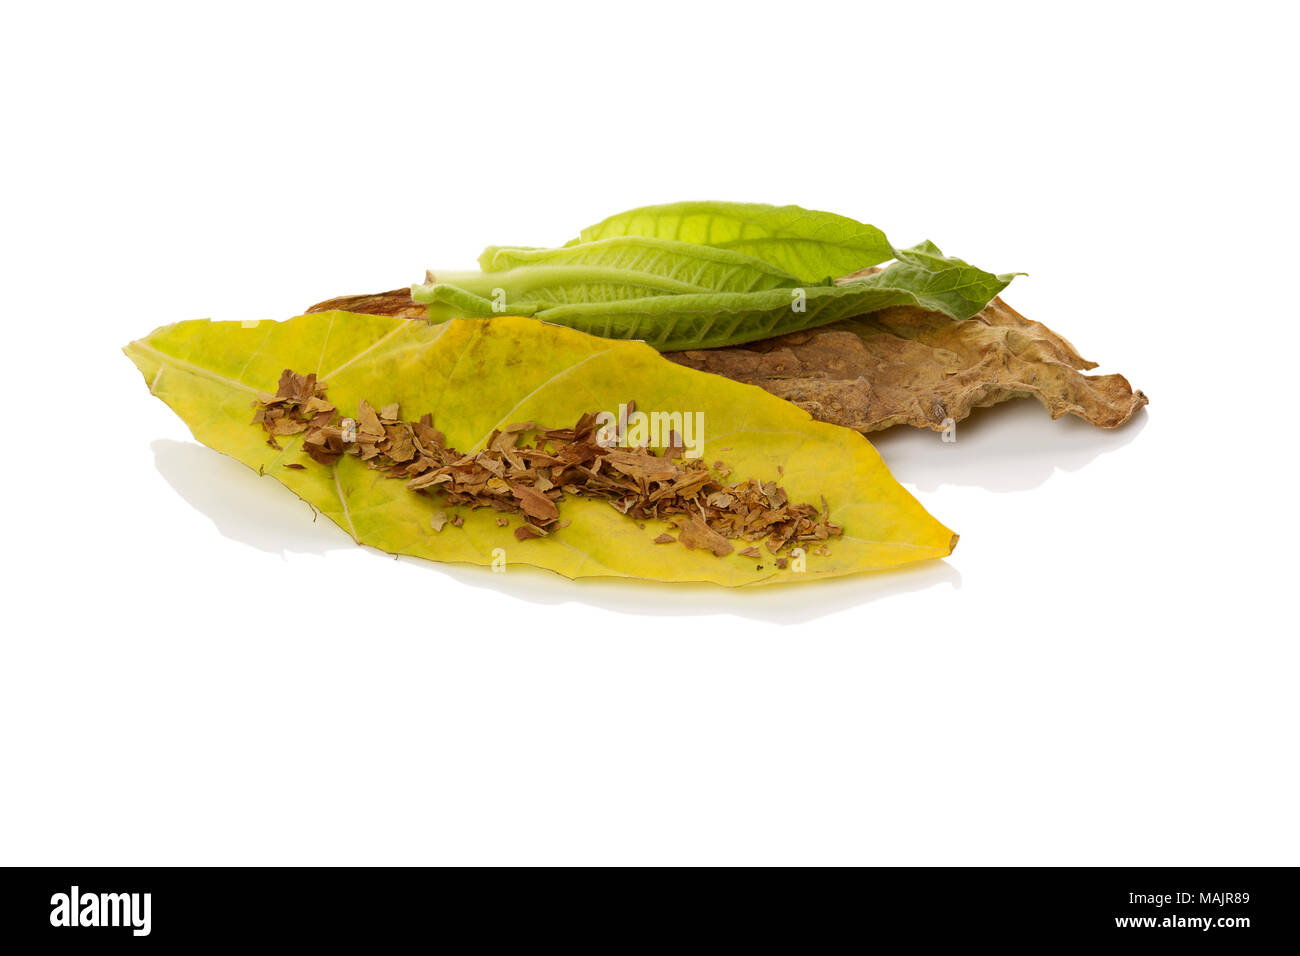 Fresh and dried tobacco leaves isolated on white background. - Stock Image